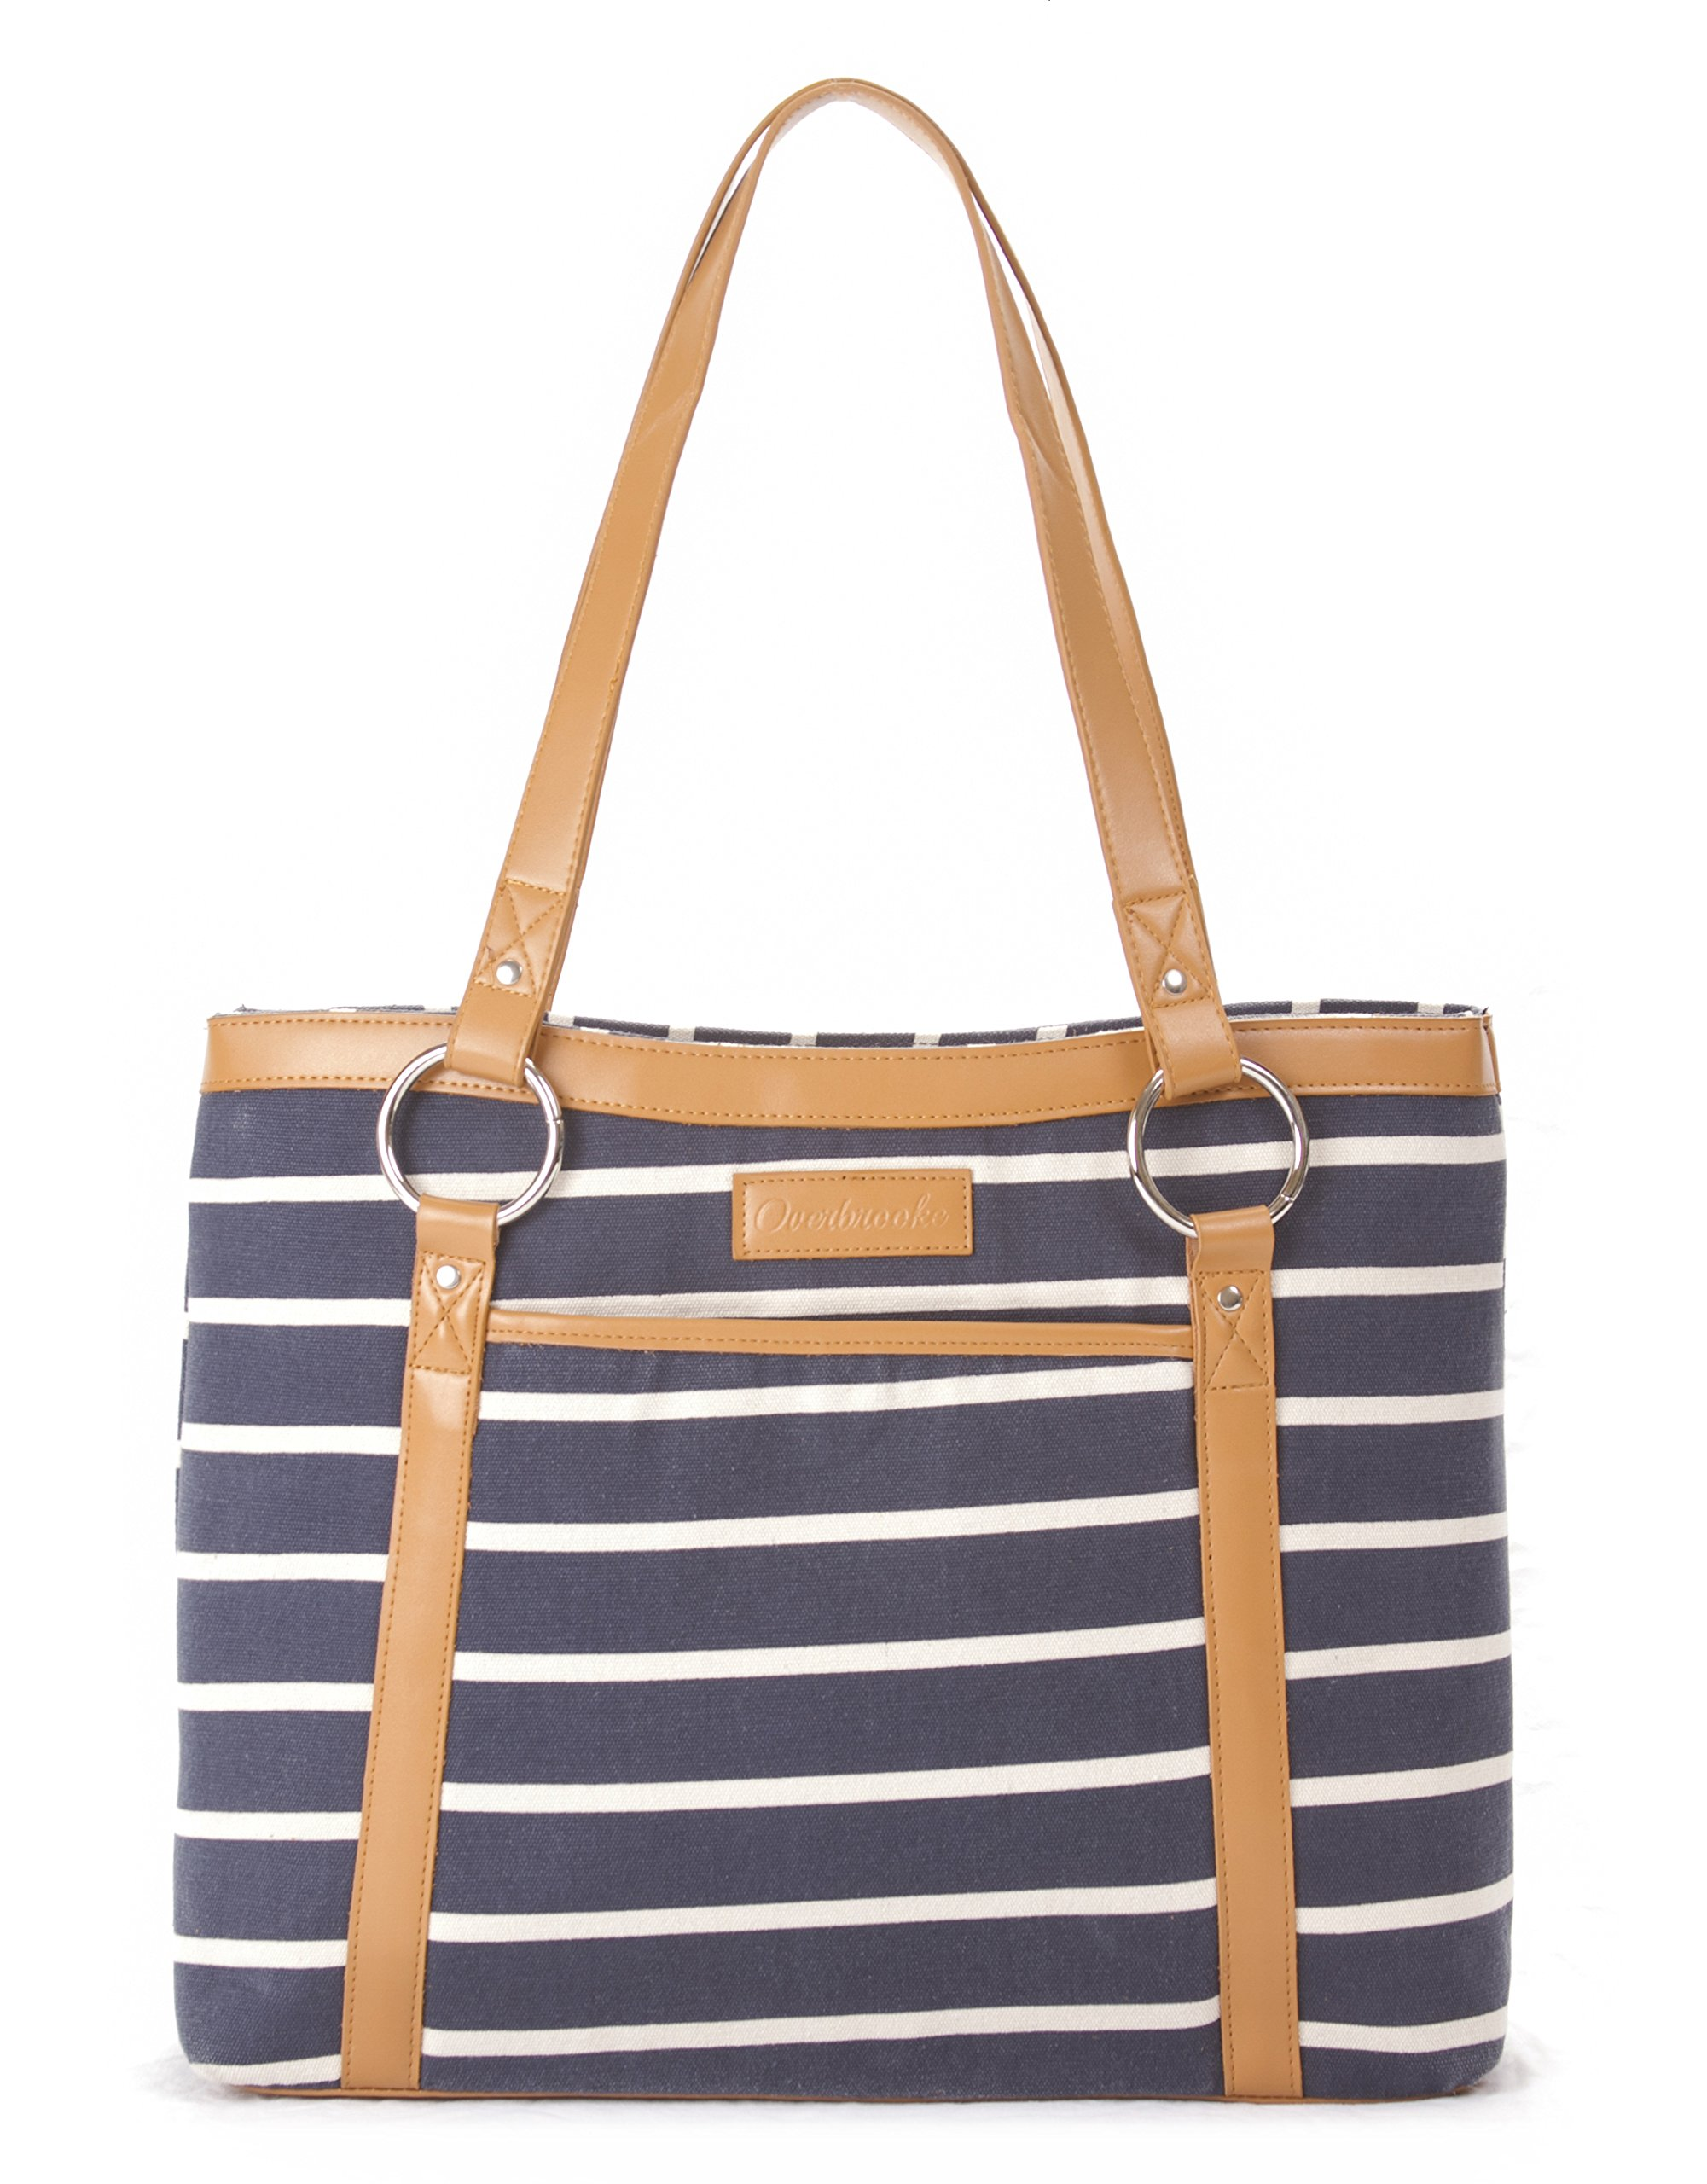 Overbrooke Classic Canvas Laptop Tote Bag - Womens Shoulder Bag for Laptops up to 15.6 Inches